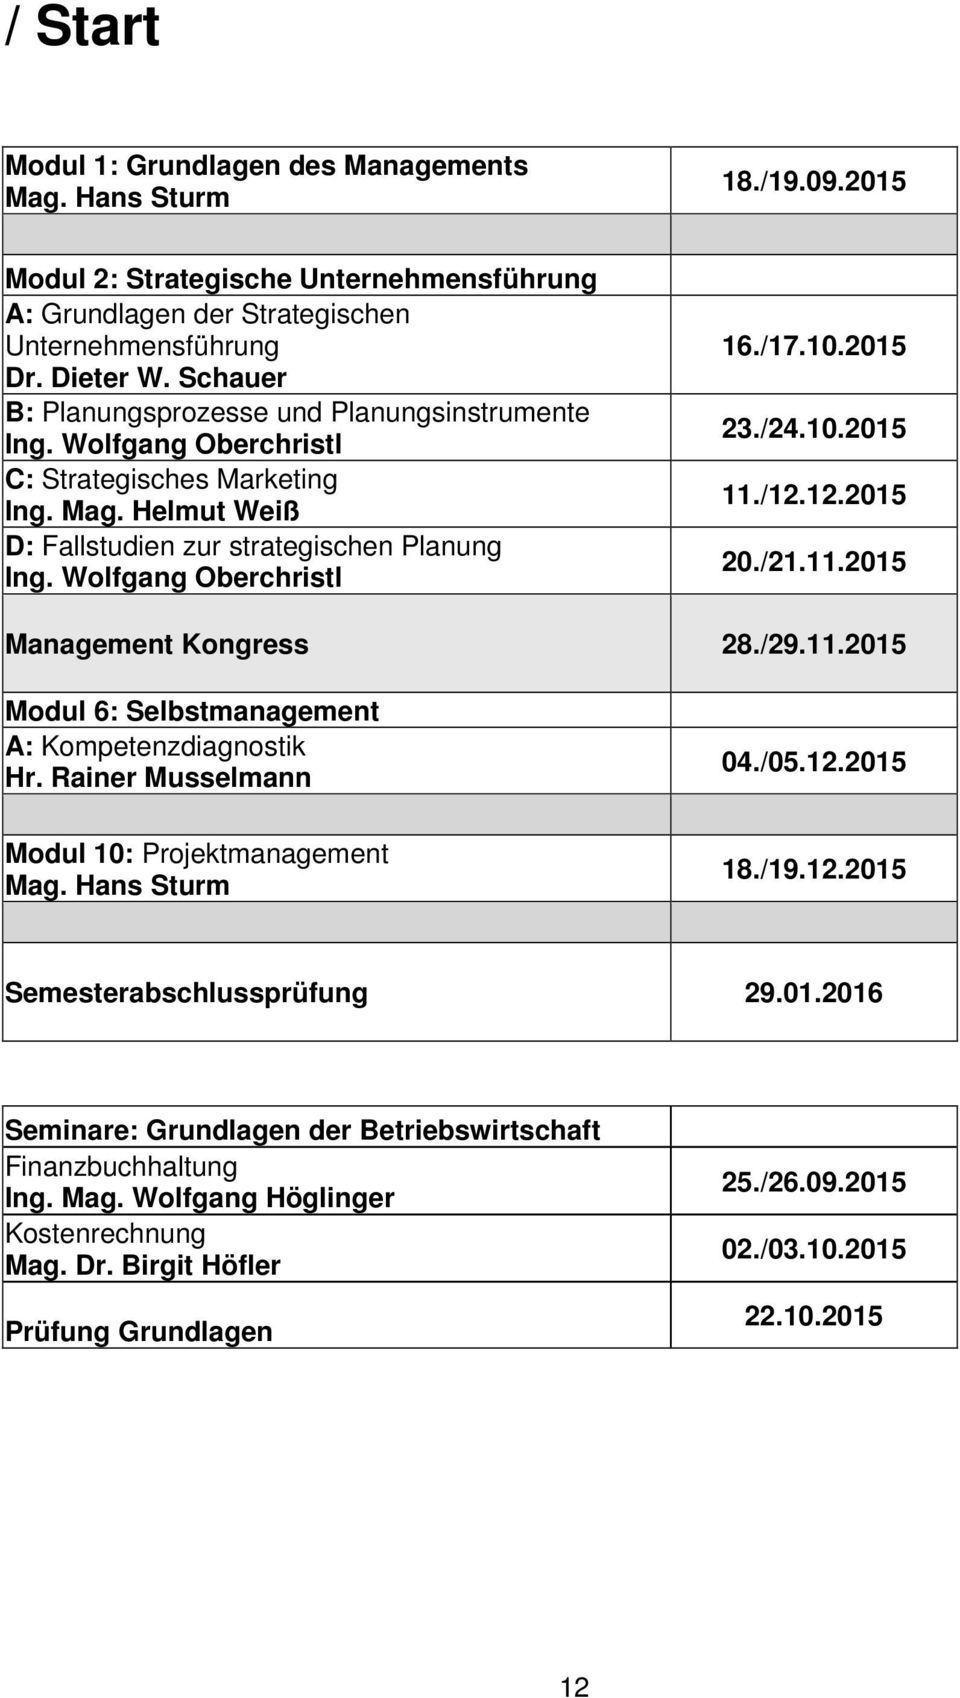 10.2015 23./24.10.2015 11./12.12.2015 20./21.11.2015 Management Kongress 28./29.11.2015 Modul 6: Selbstmanagement A: Kompetenzdiagnostik Hr. Rainer Musselmann 04./05.12.2015 Modul 10: Projektmanagement Mag.